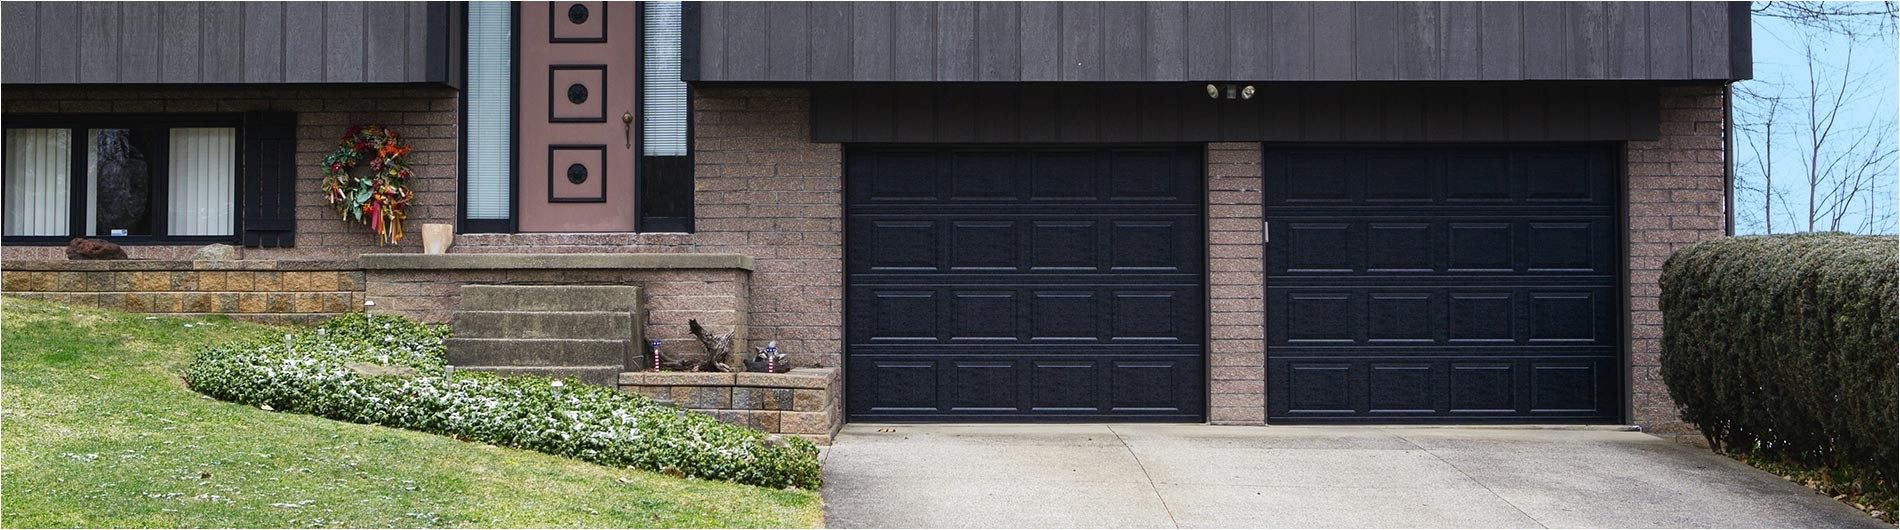 top rated garage door services read our 5 stars reviews from a real customers 5 stars fl